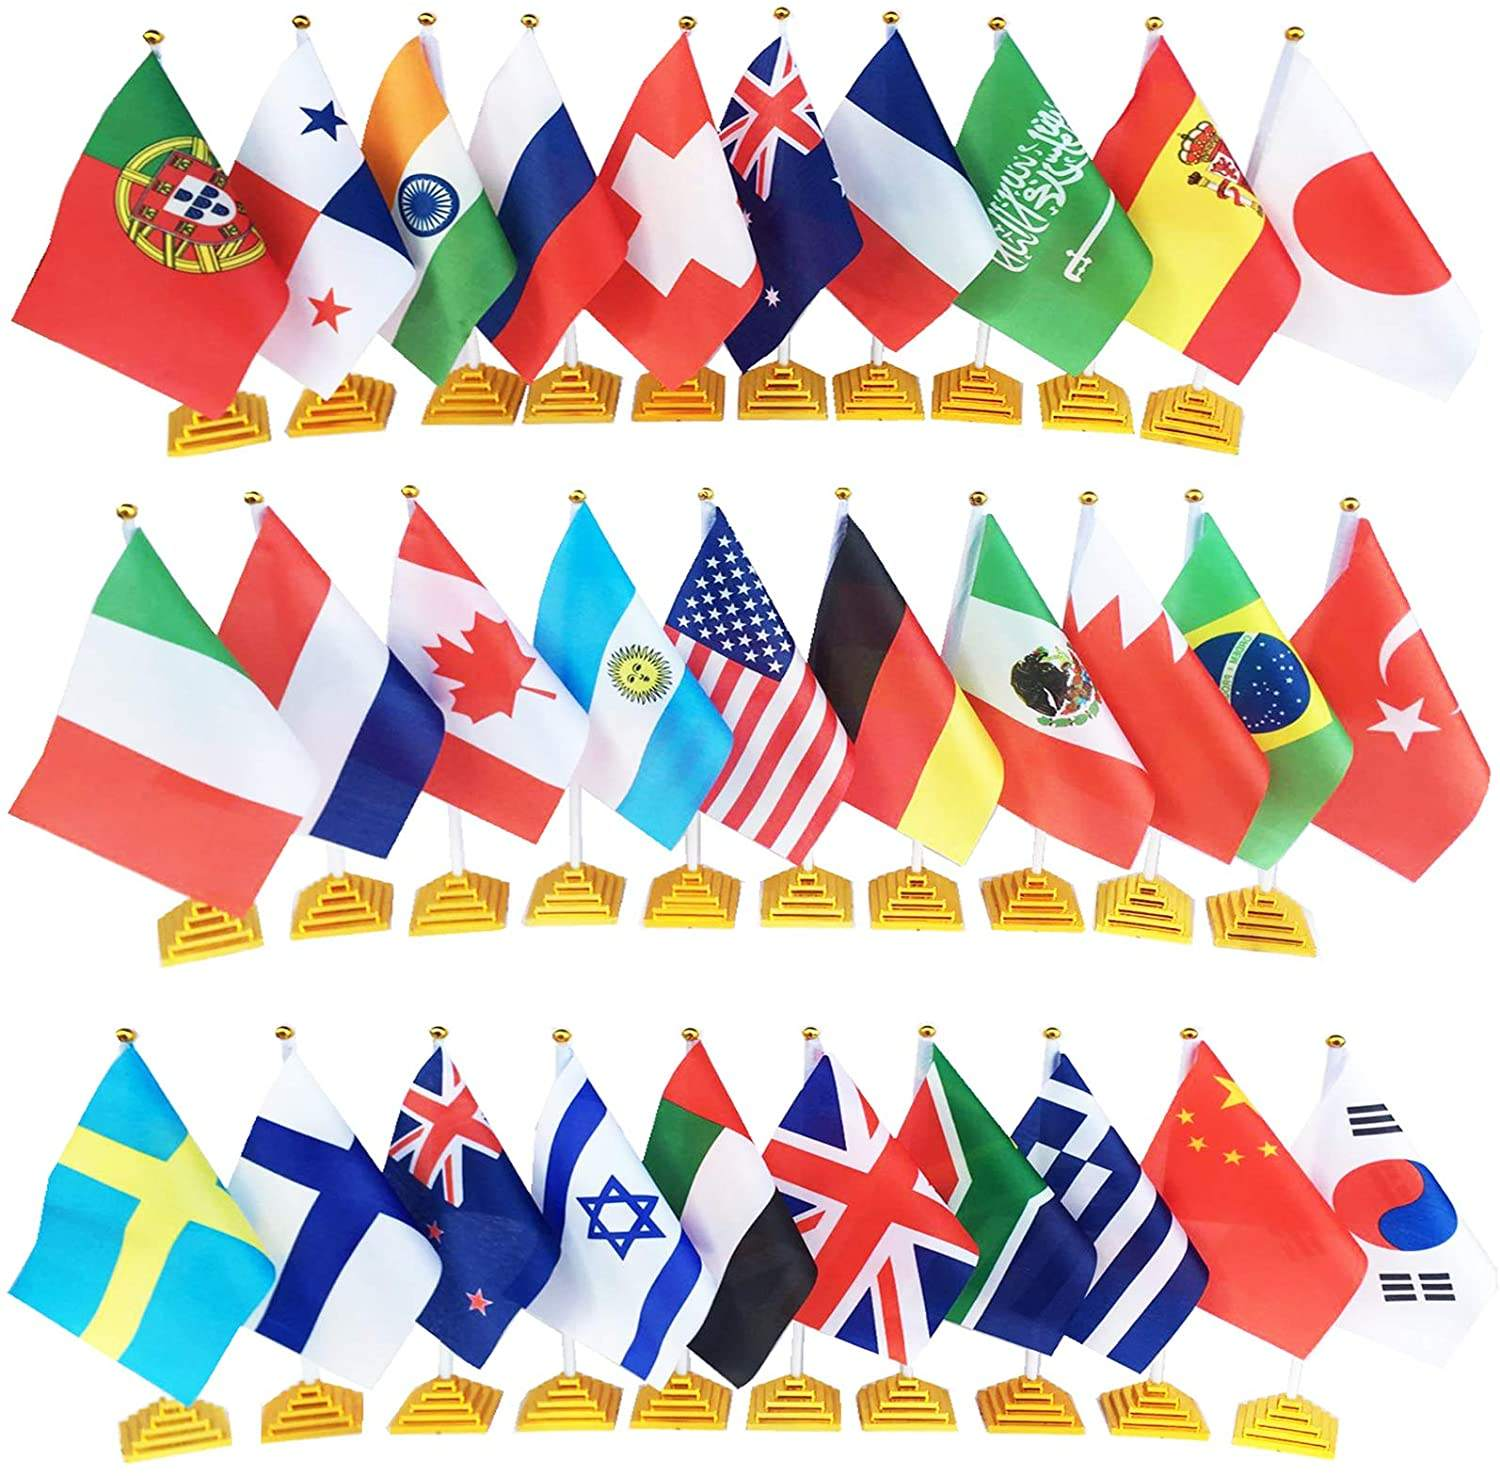 Internationale Tafel Vlag Office Vlag Stand Wit Pole Met Golden Top Vervagen Gouden Piramide Stand Bases Bureau Vlaggen